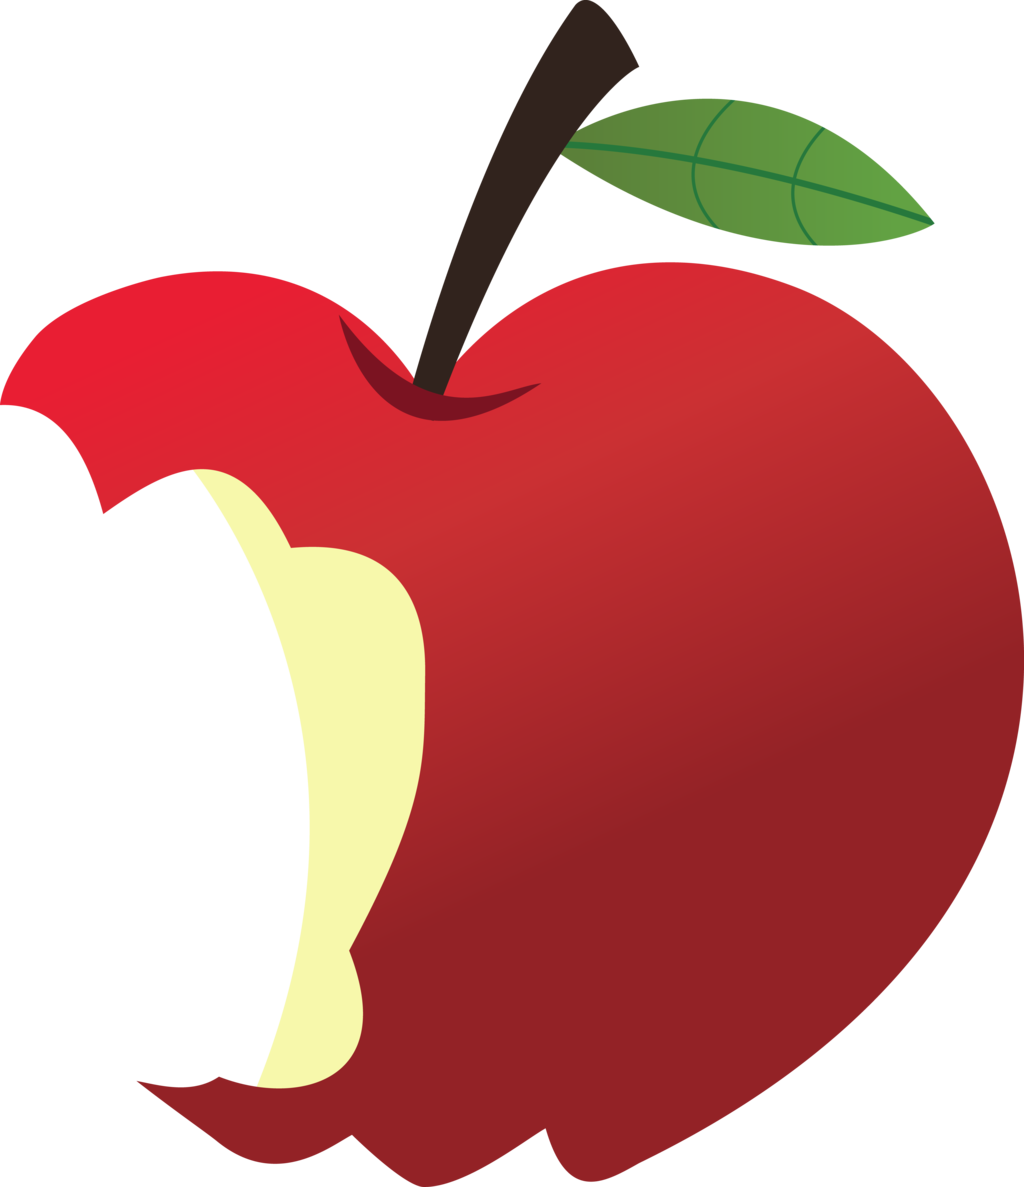 Apple stem and leaf clipart graphic freeuse download Bitten Apple Clipart - Imagens de clip art gratuitas | PINTURA EM ... graphic freeuse download